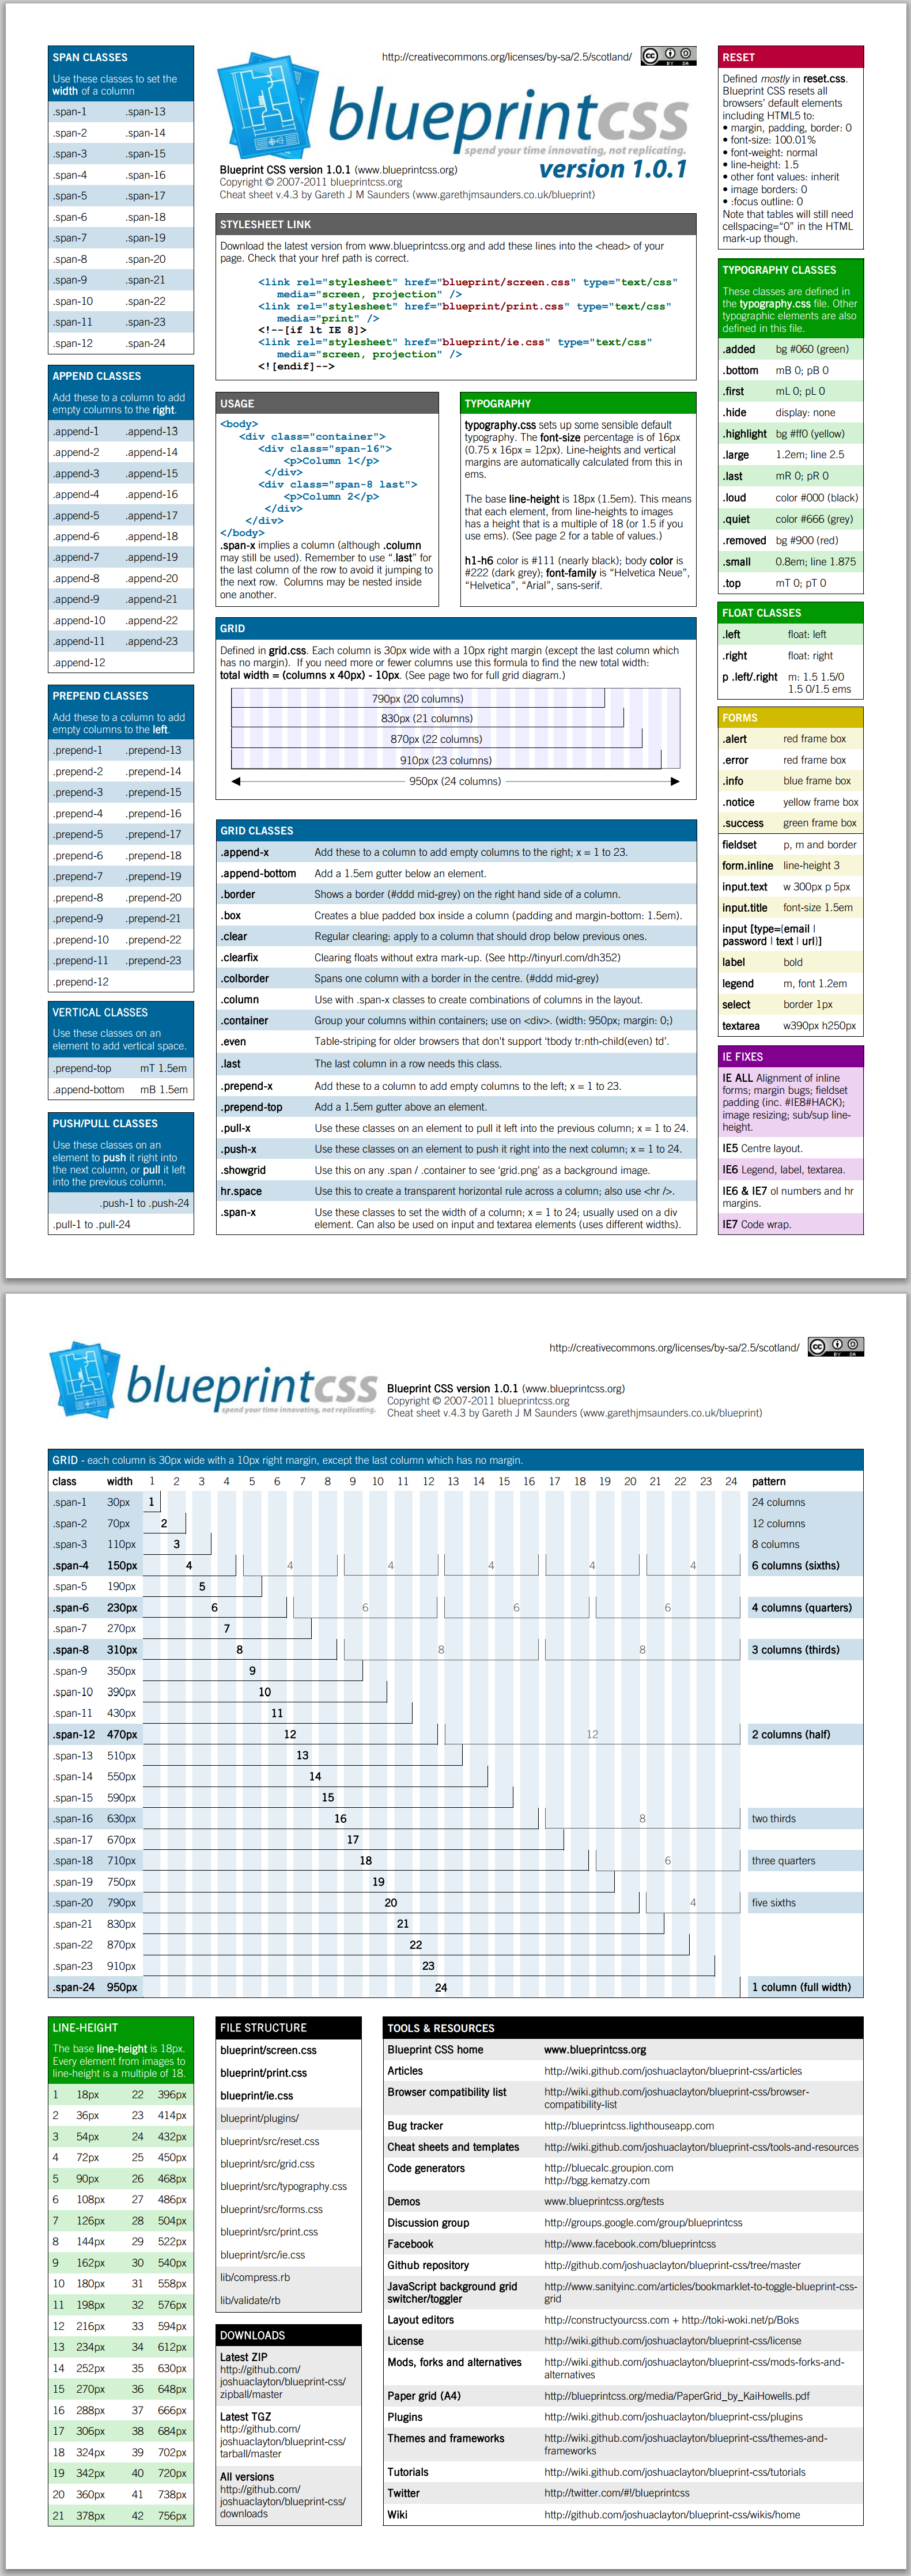 Blueprint css a css framework for web designers and developers css blueprint css a css framework for web designers and developers css mustread malvernweather Choice Image